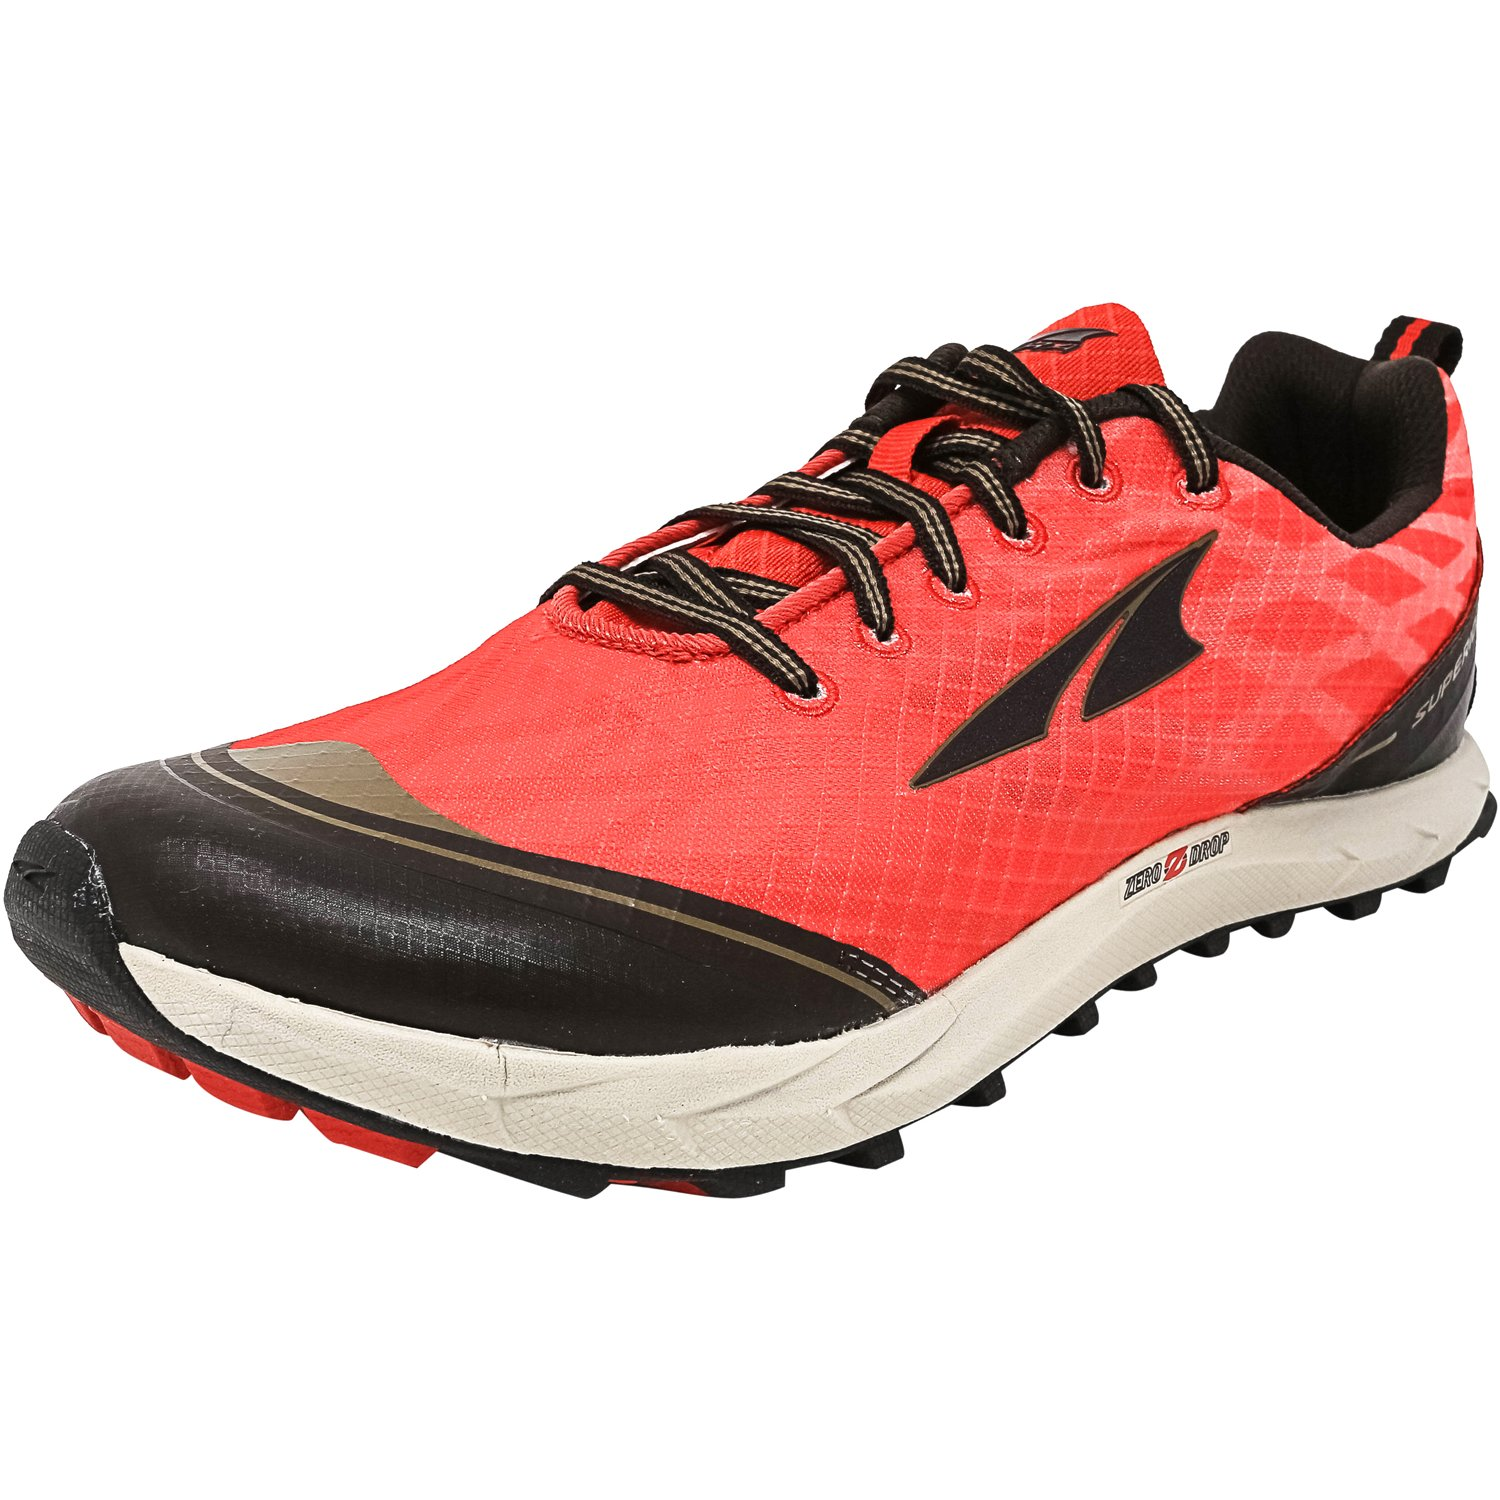 Altra Women's Superior 2.0 Poppy Red / Chocolate Ankle-High Running Shoe - 10.5M